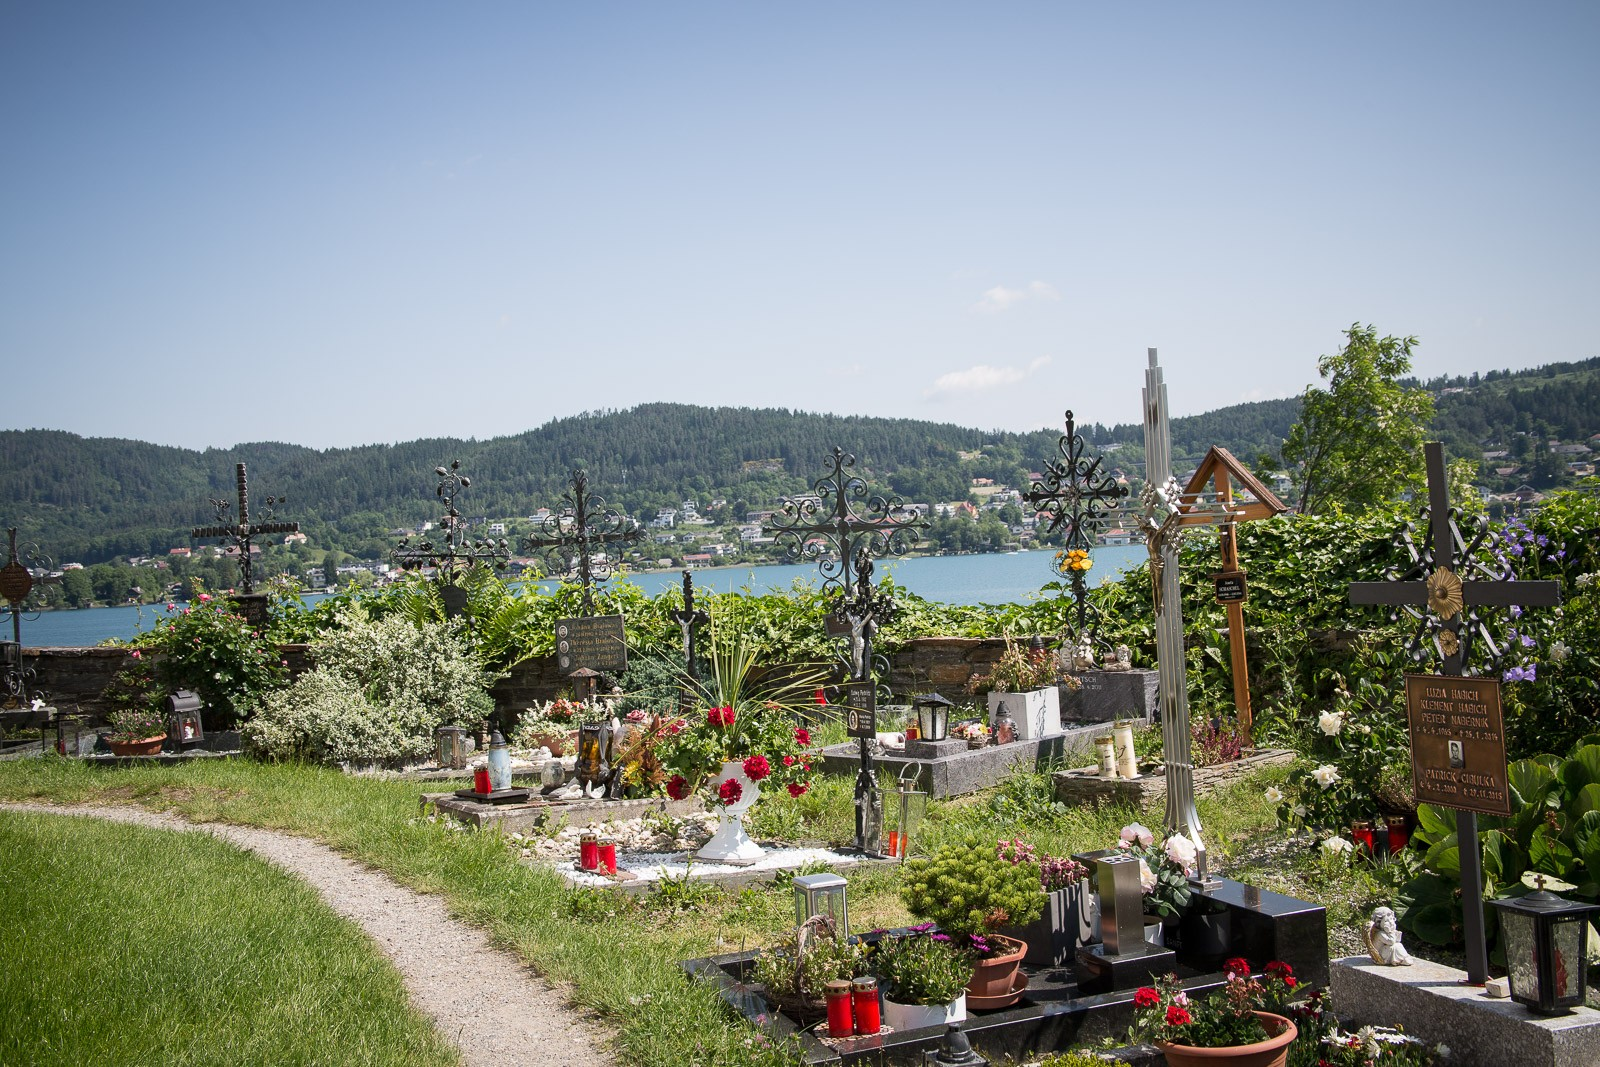 Der Friedhof in Maria Wörth